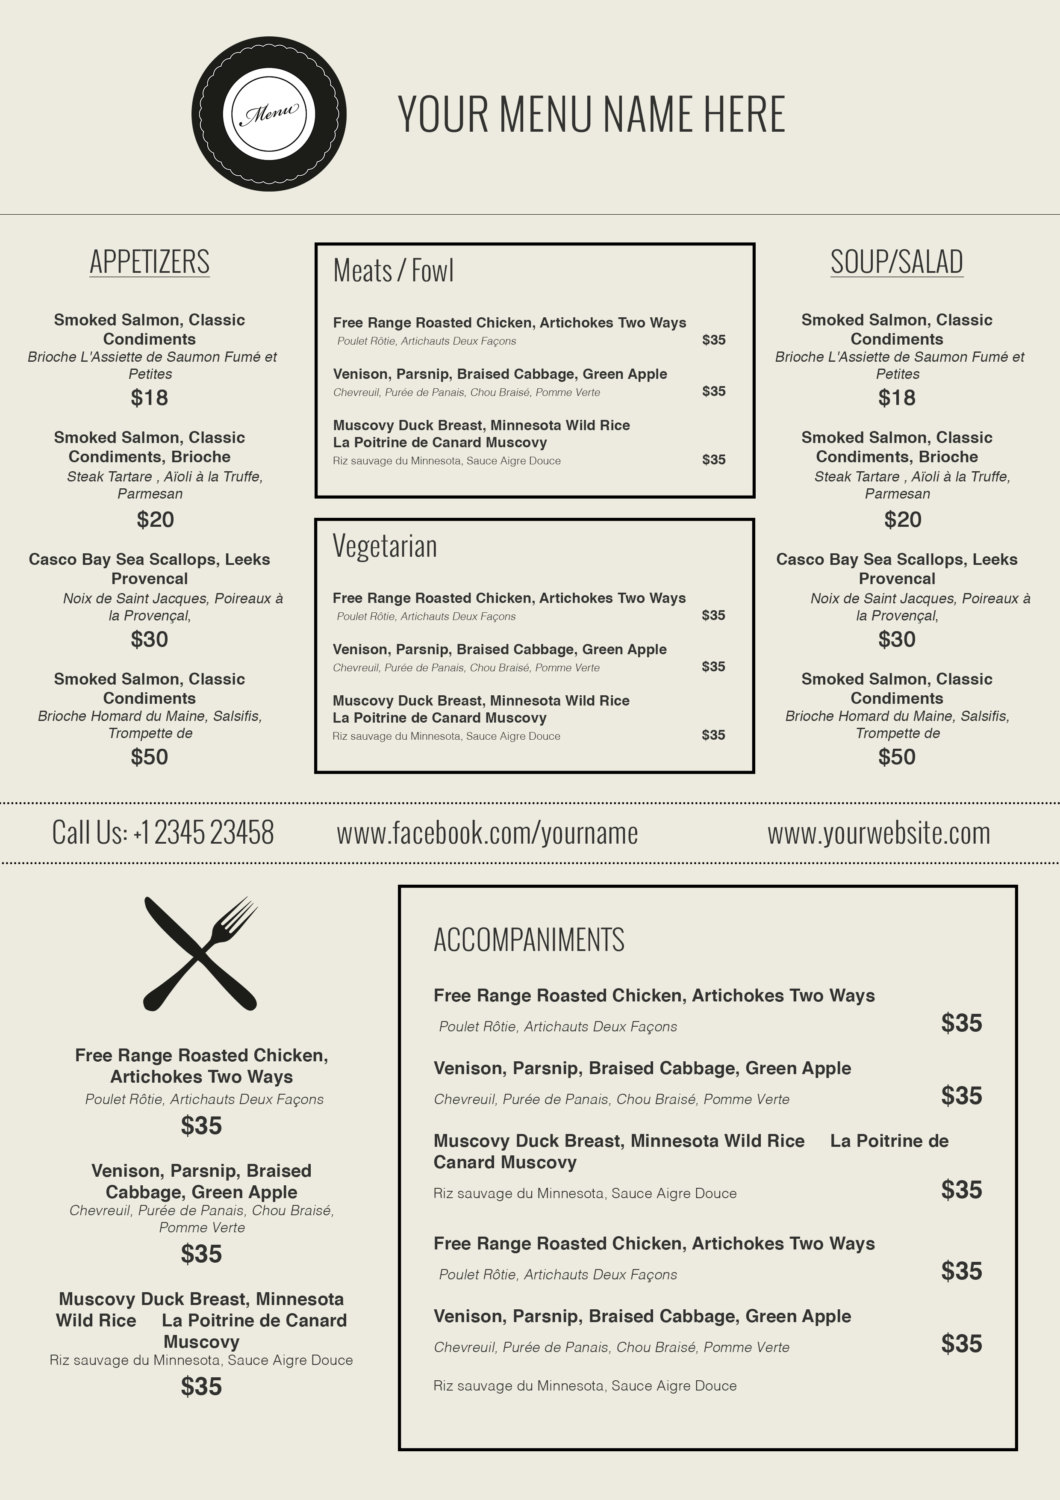 menu template word free – How to Make a Restaurant Menu on Microsoft Word